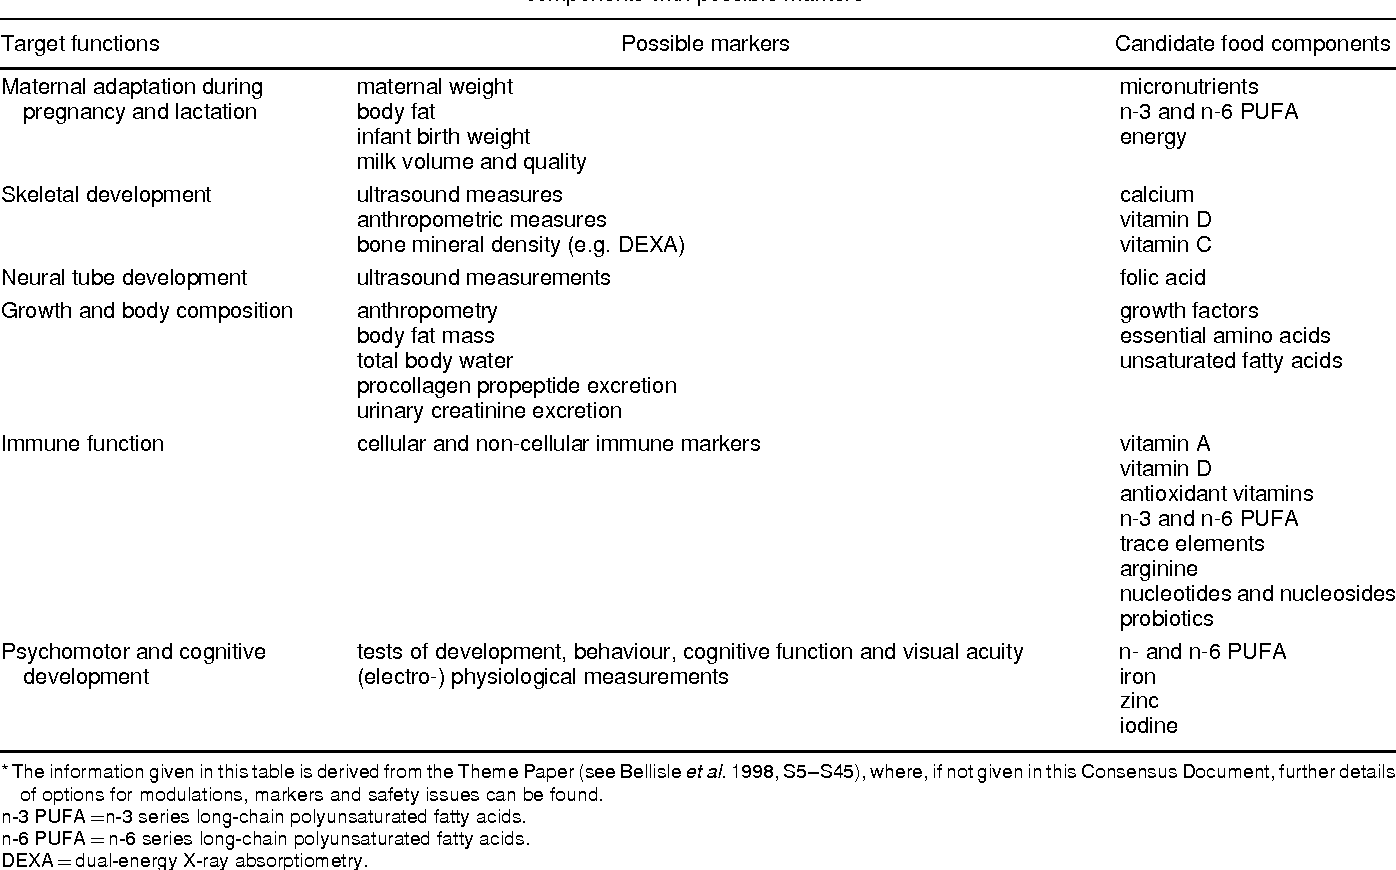 Table 1 From Scientific Concepts Of Functional Foods In Europe